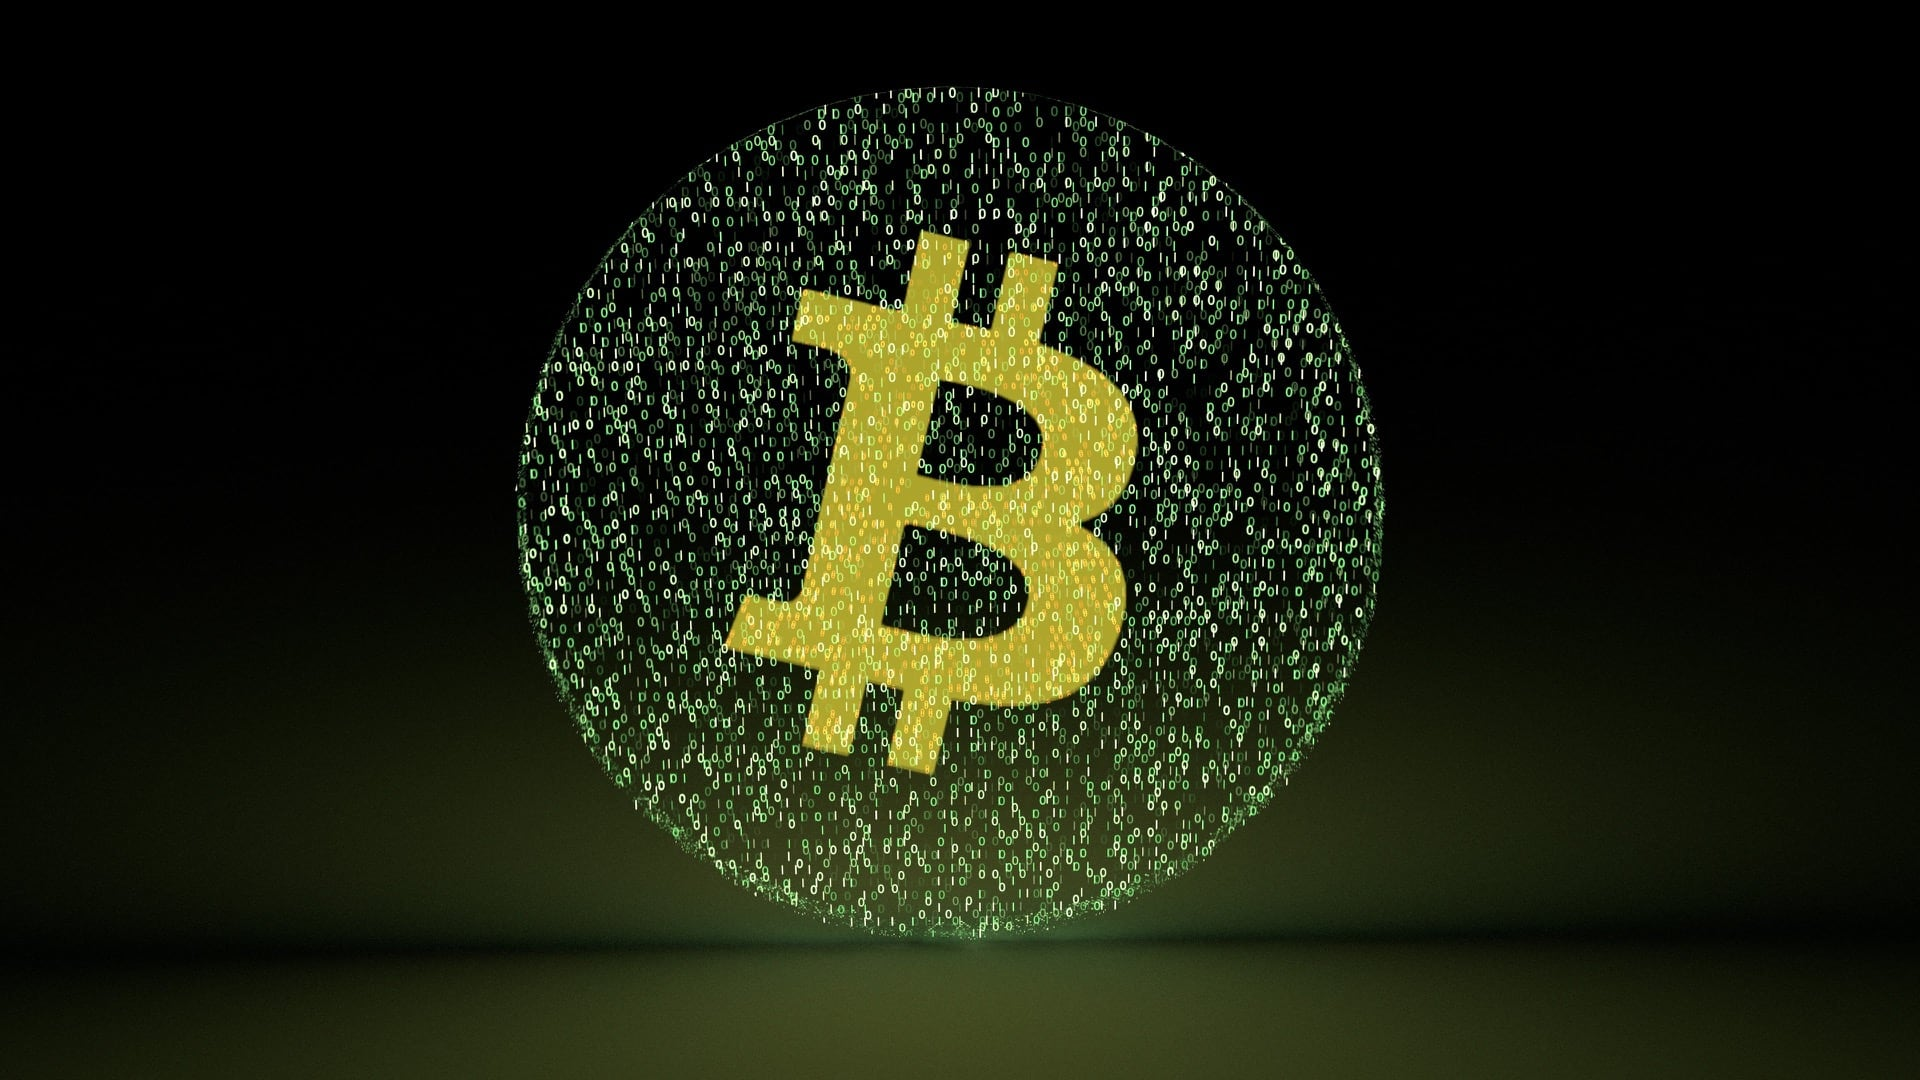 Bitcoin Highlights: 22Hertz, Mastercard, Bitcoin Price